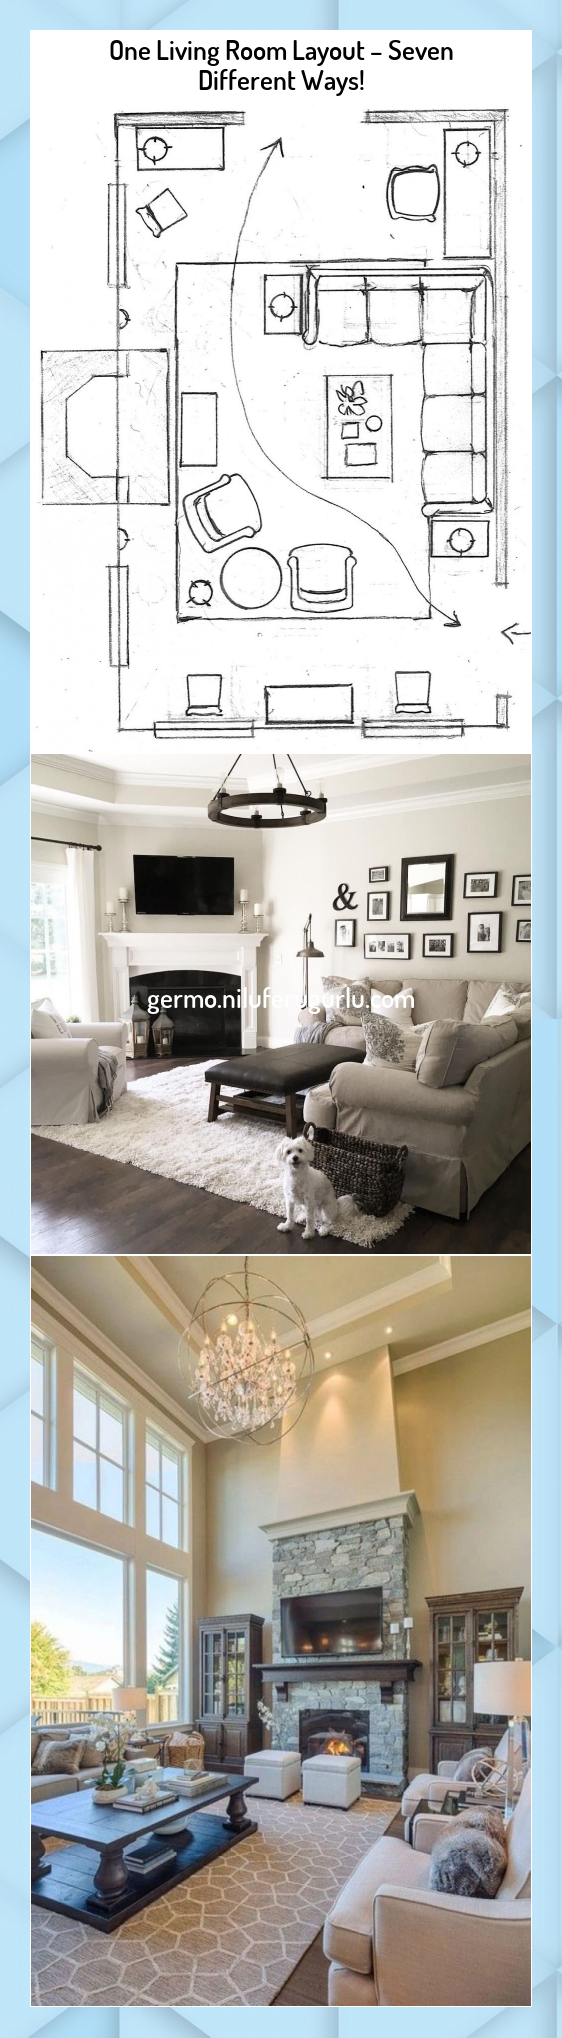 One Living Room Layout  Seven Different Ways